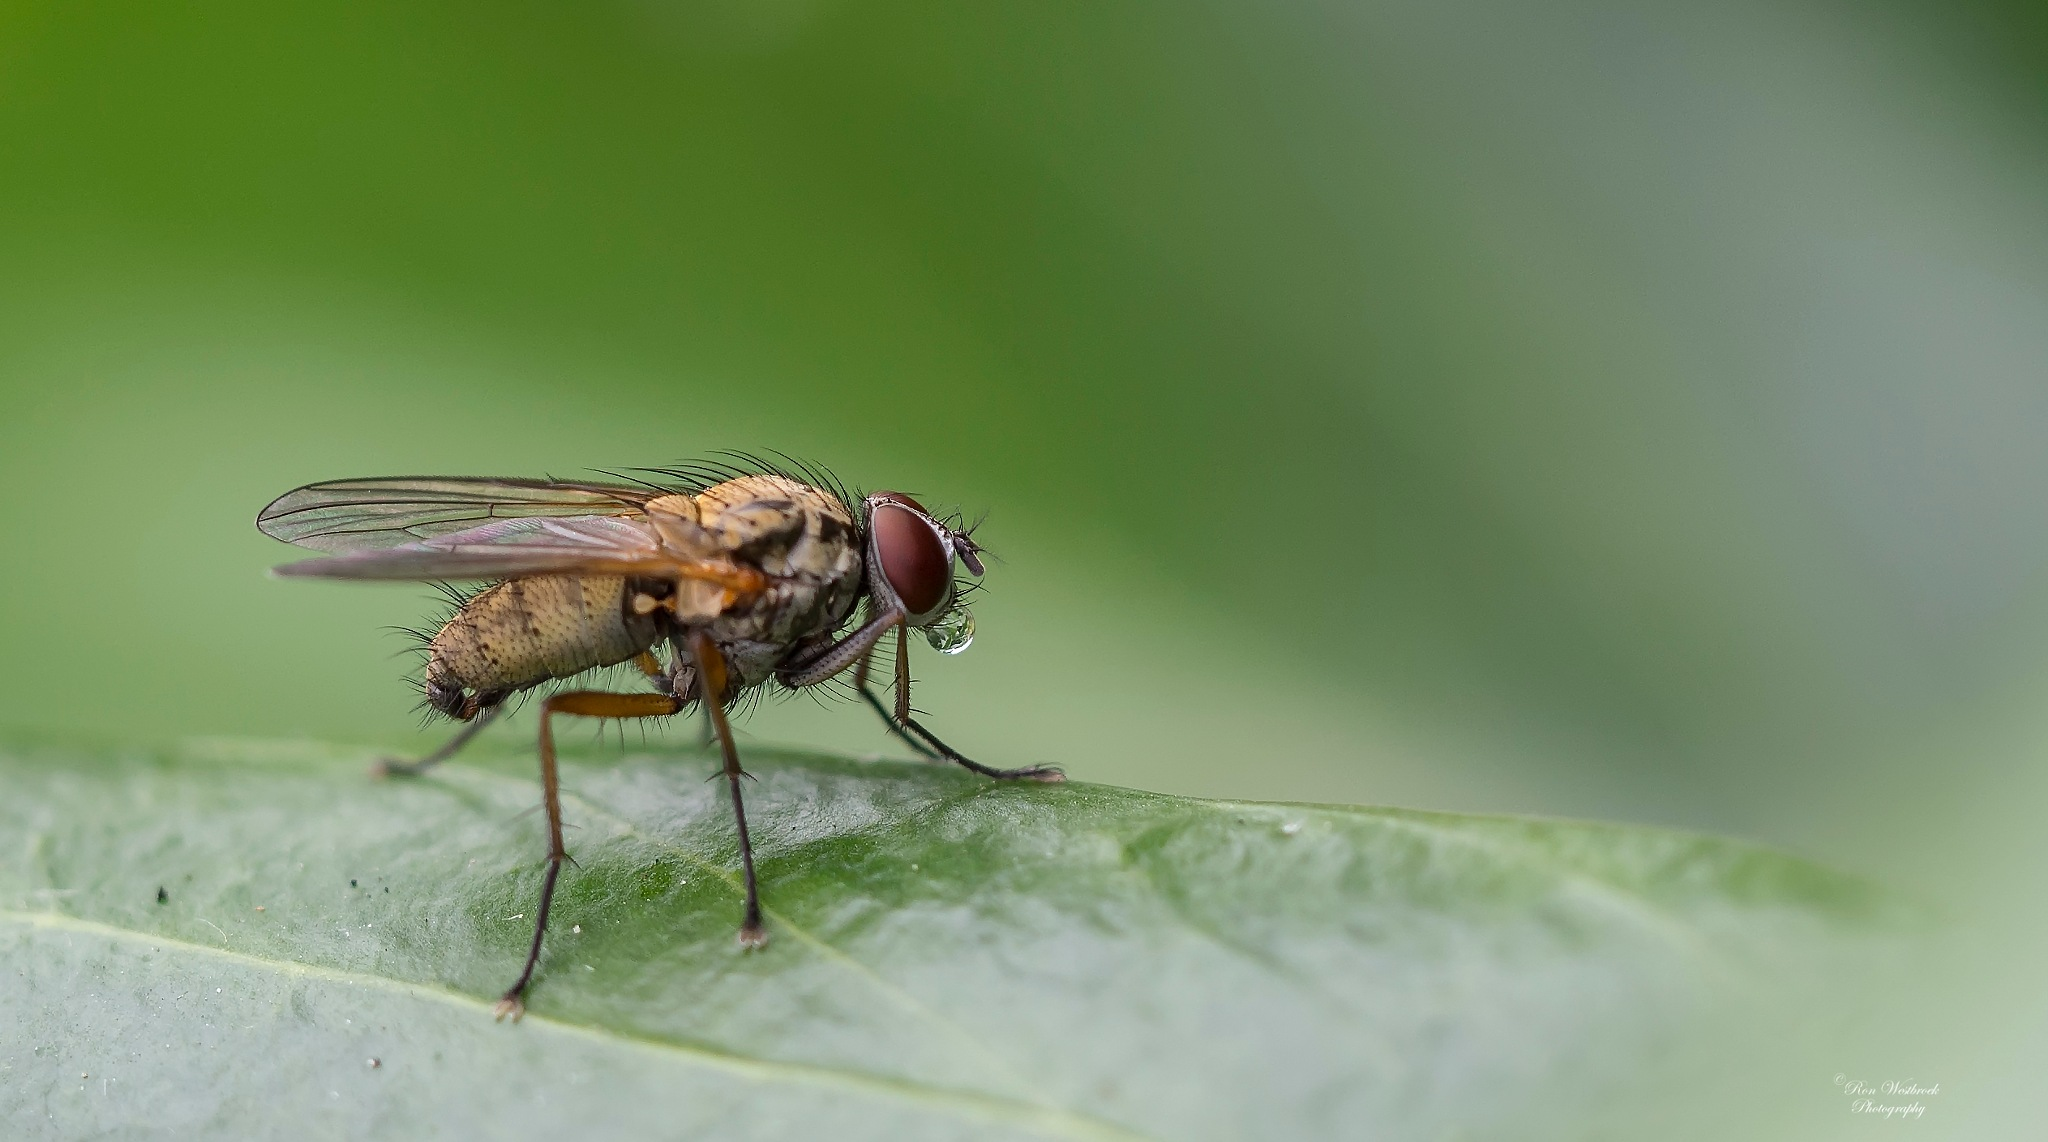 Dung fly by Ron Westbroek